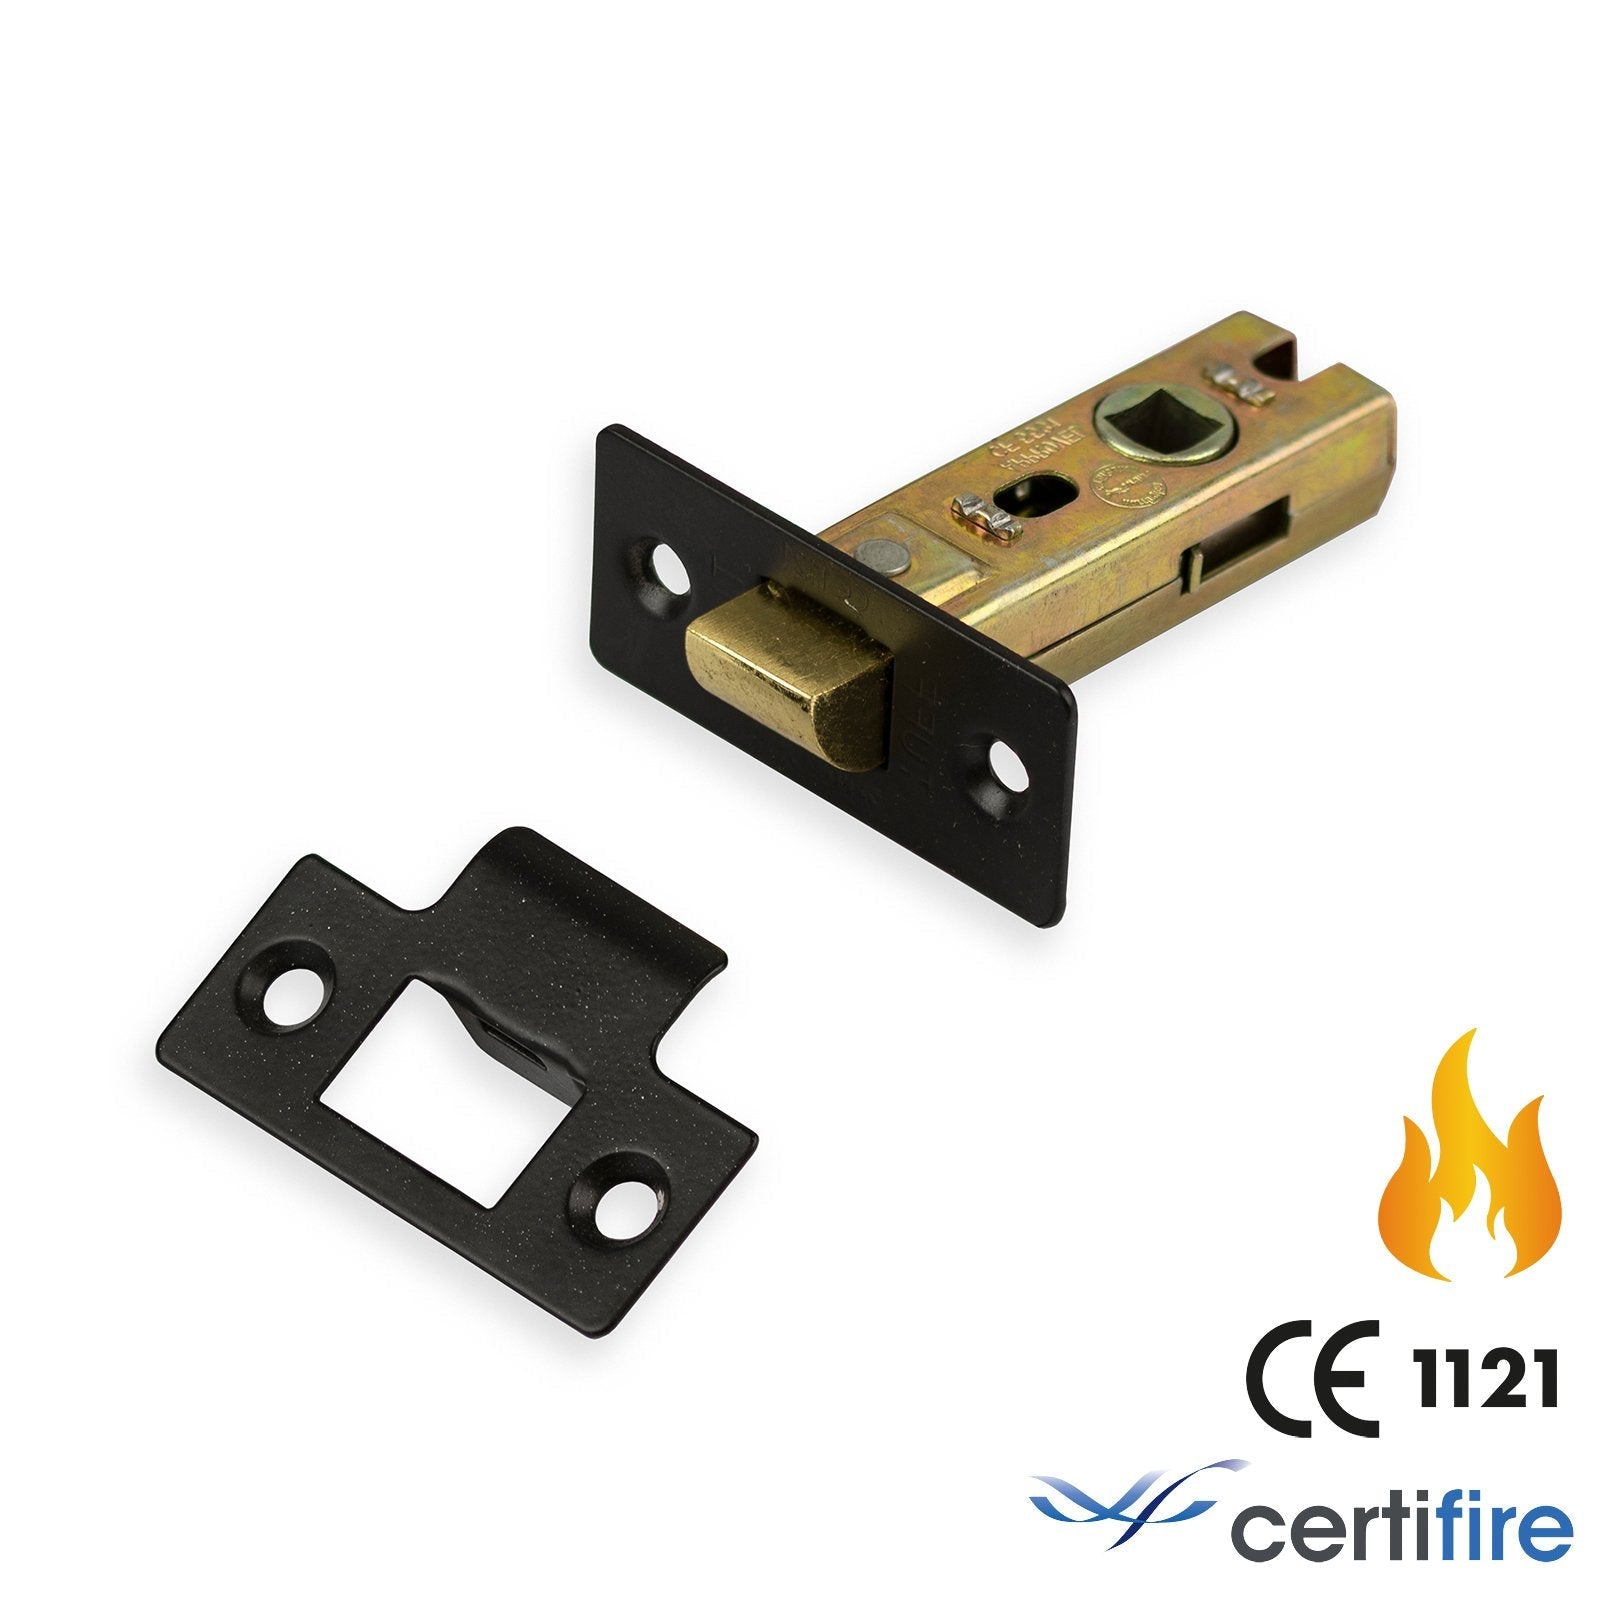 Tubular Latch Bolt Through Fire Rated | 2.5 inch | Epoxy Black